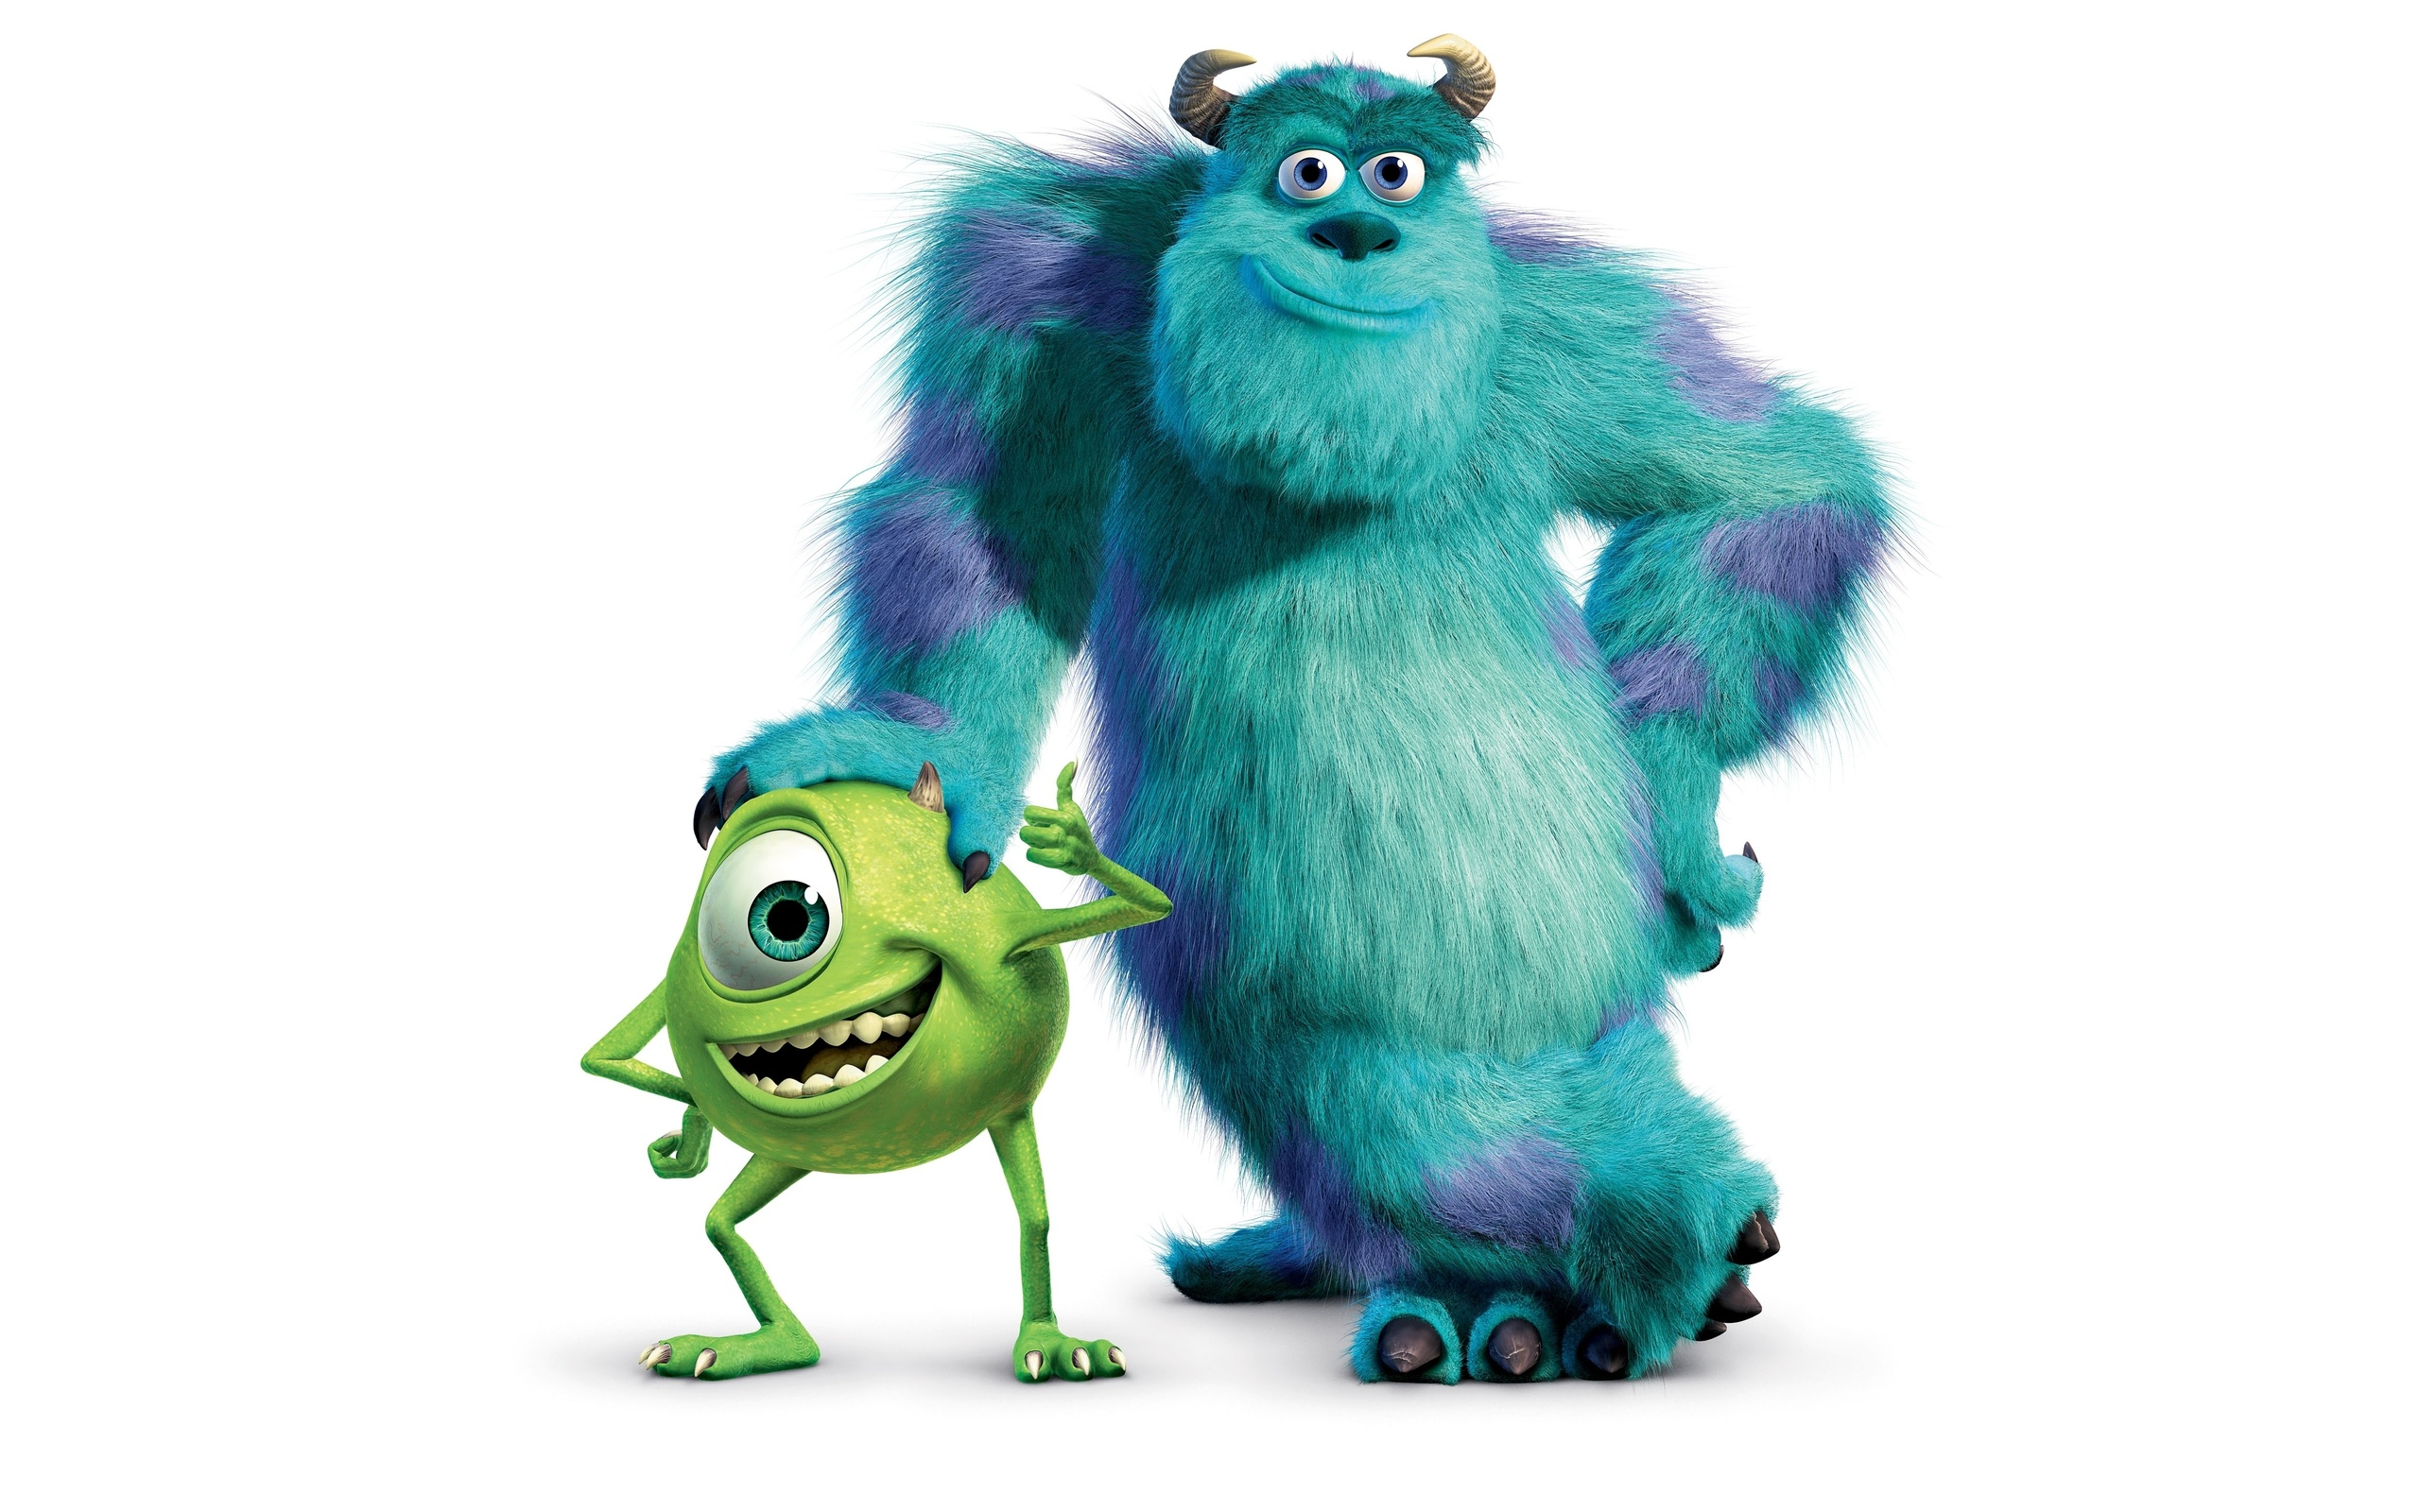 Monsters Inc. (Children's Film Series)